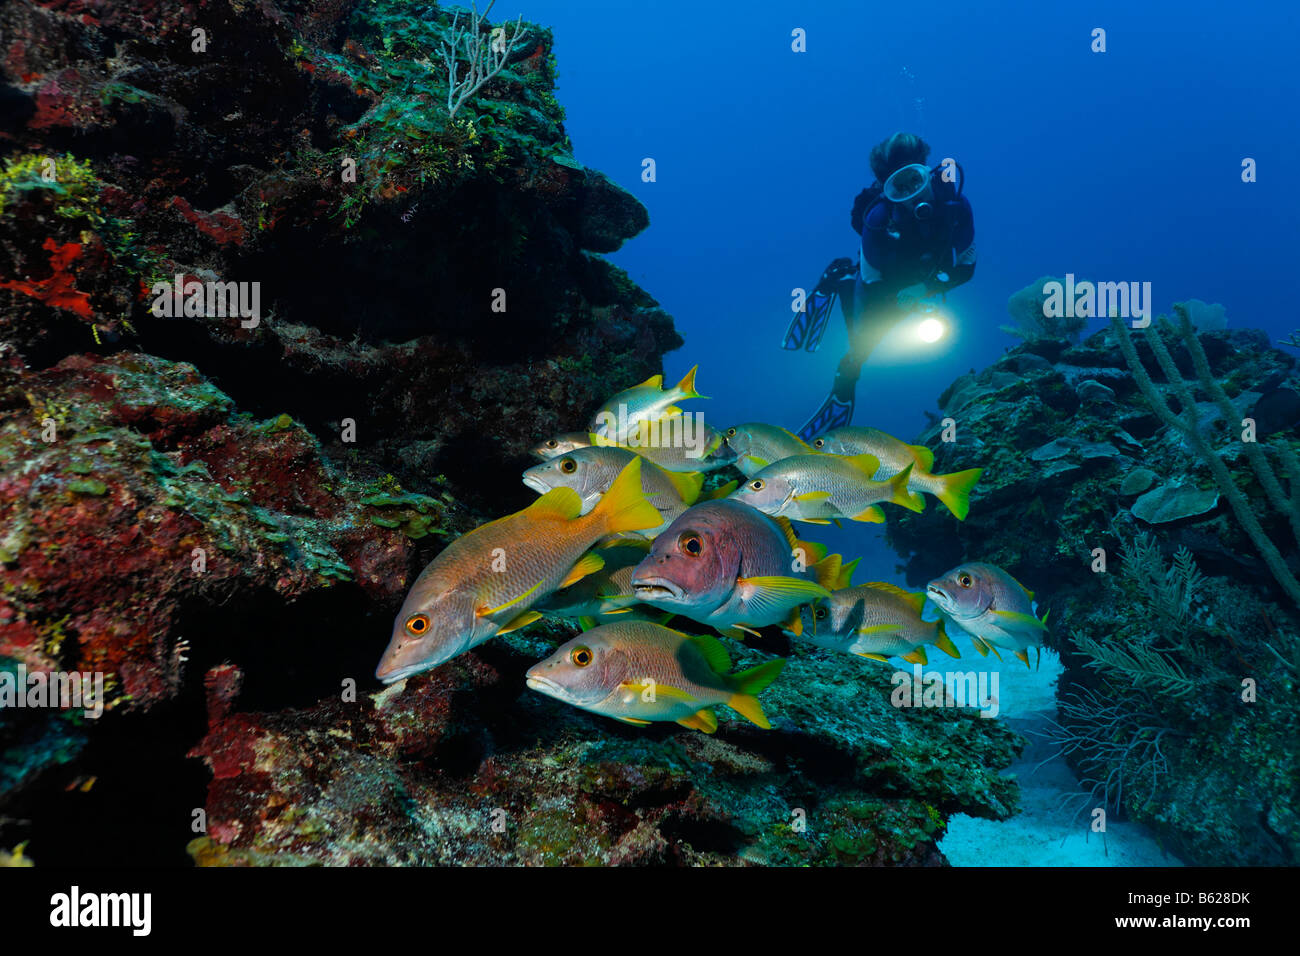 Scuber Diver with a torch observing a school of Dogtooth Snapper or Schoolmaster or Schoolmaster Snapper fish (Lutjanus - Stock Image